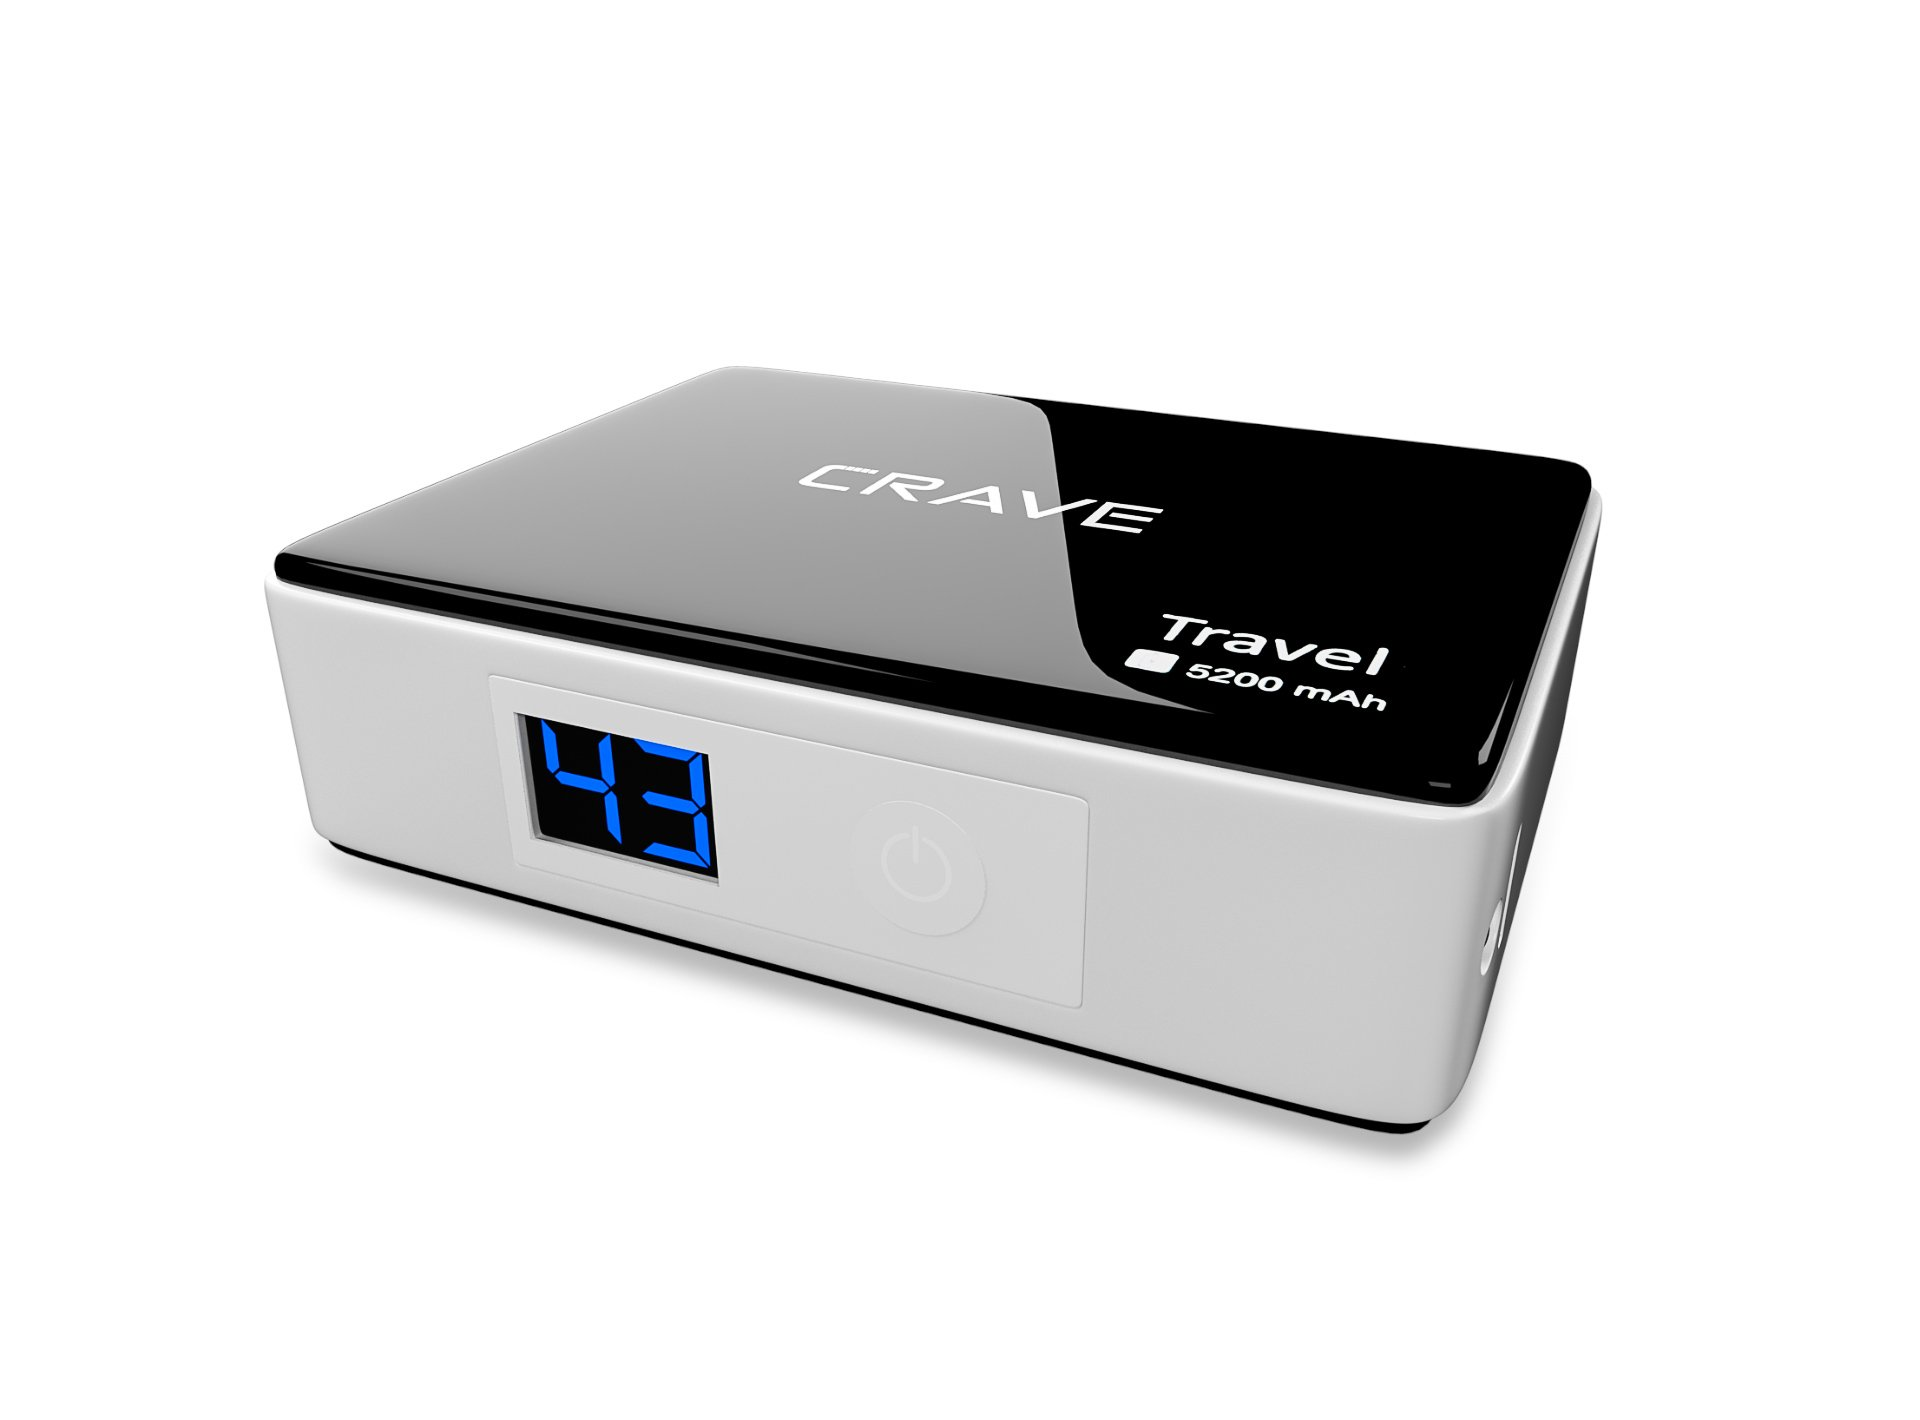 Portable Charger - Crave Travel 5200mah Ultra-compact Ultra-High Density, External Batter Charger Power Bank for Apple iPod, iPhone 4, 4s iPhone 5, 5S, iPhone 6, 6Plus, iPad Air, iPad Air2, iPad Mini, iPad Mini 2, iPad Mini 3, Samsung Galaxy S, SII, S3, S